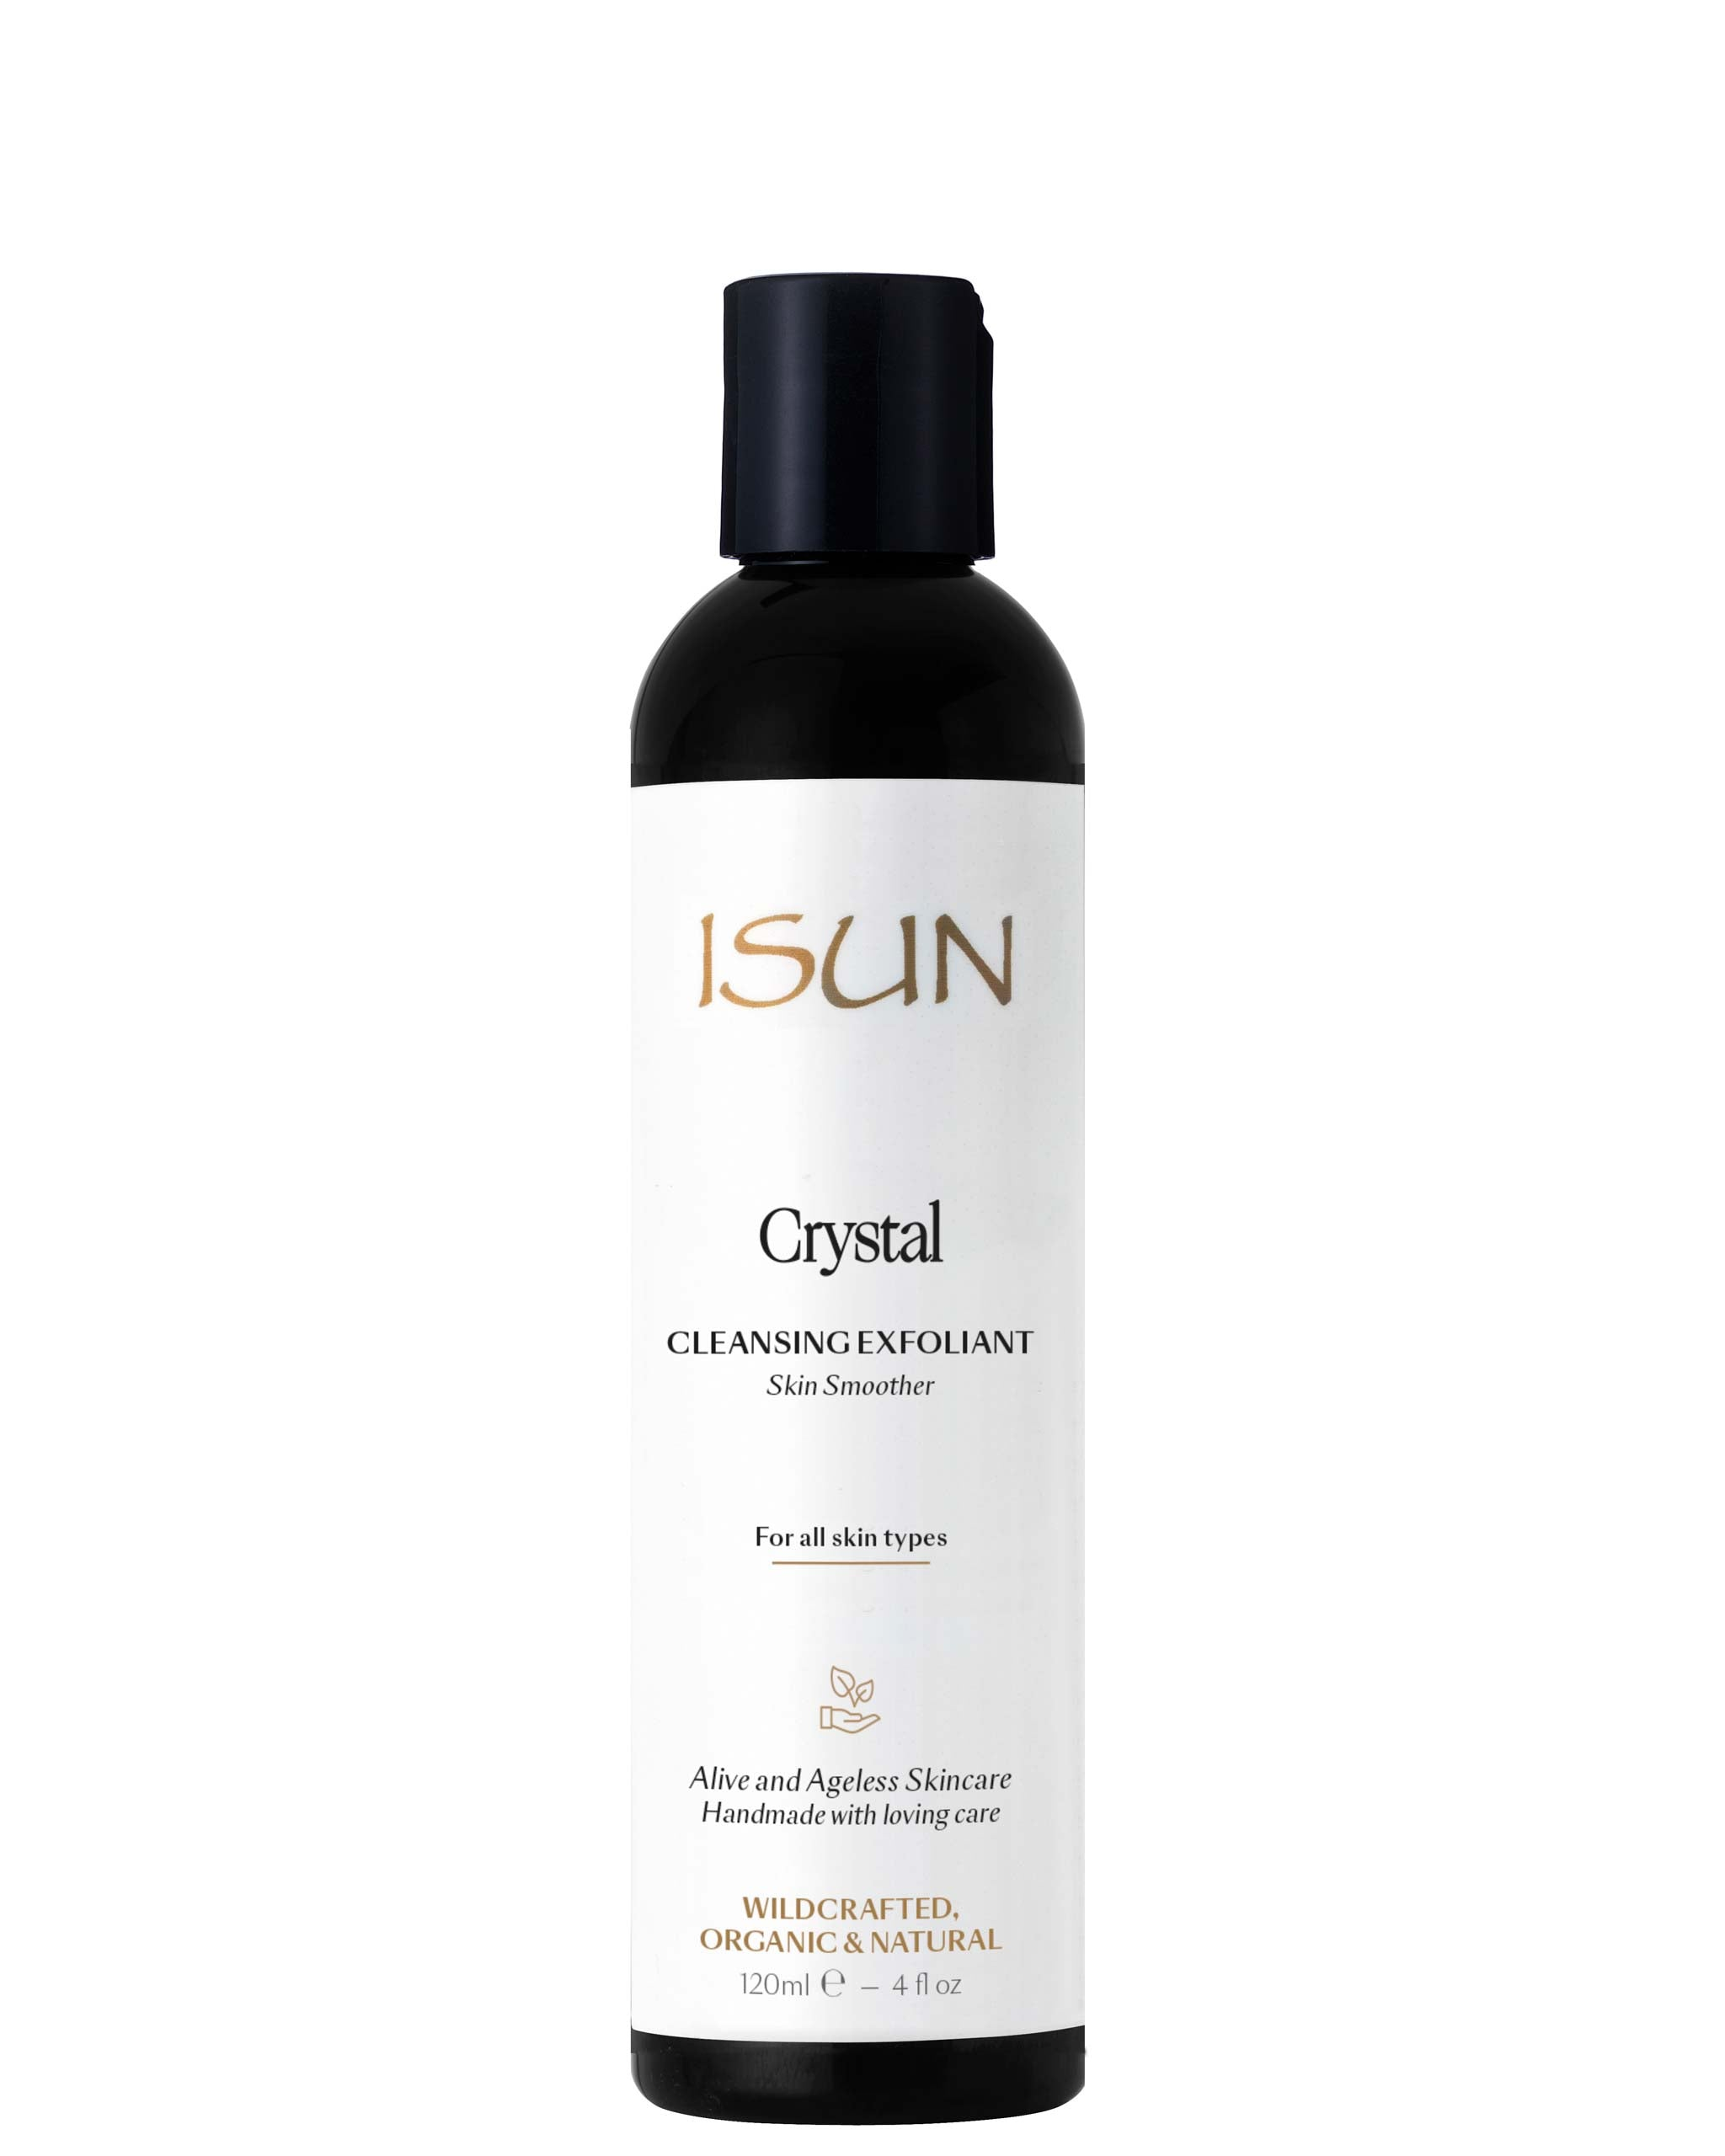 ISUN Crystal / Cleansing Exfoliant 120ML, ISUN - ShopConsciousBeauty.com